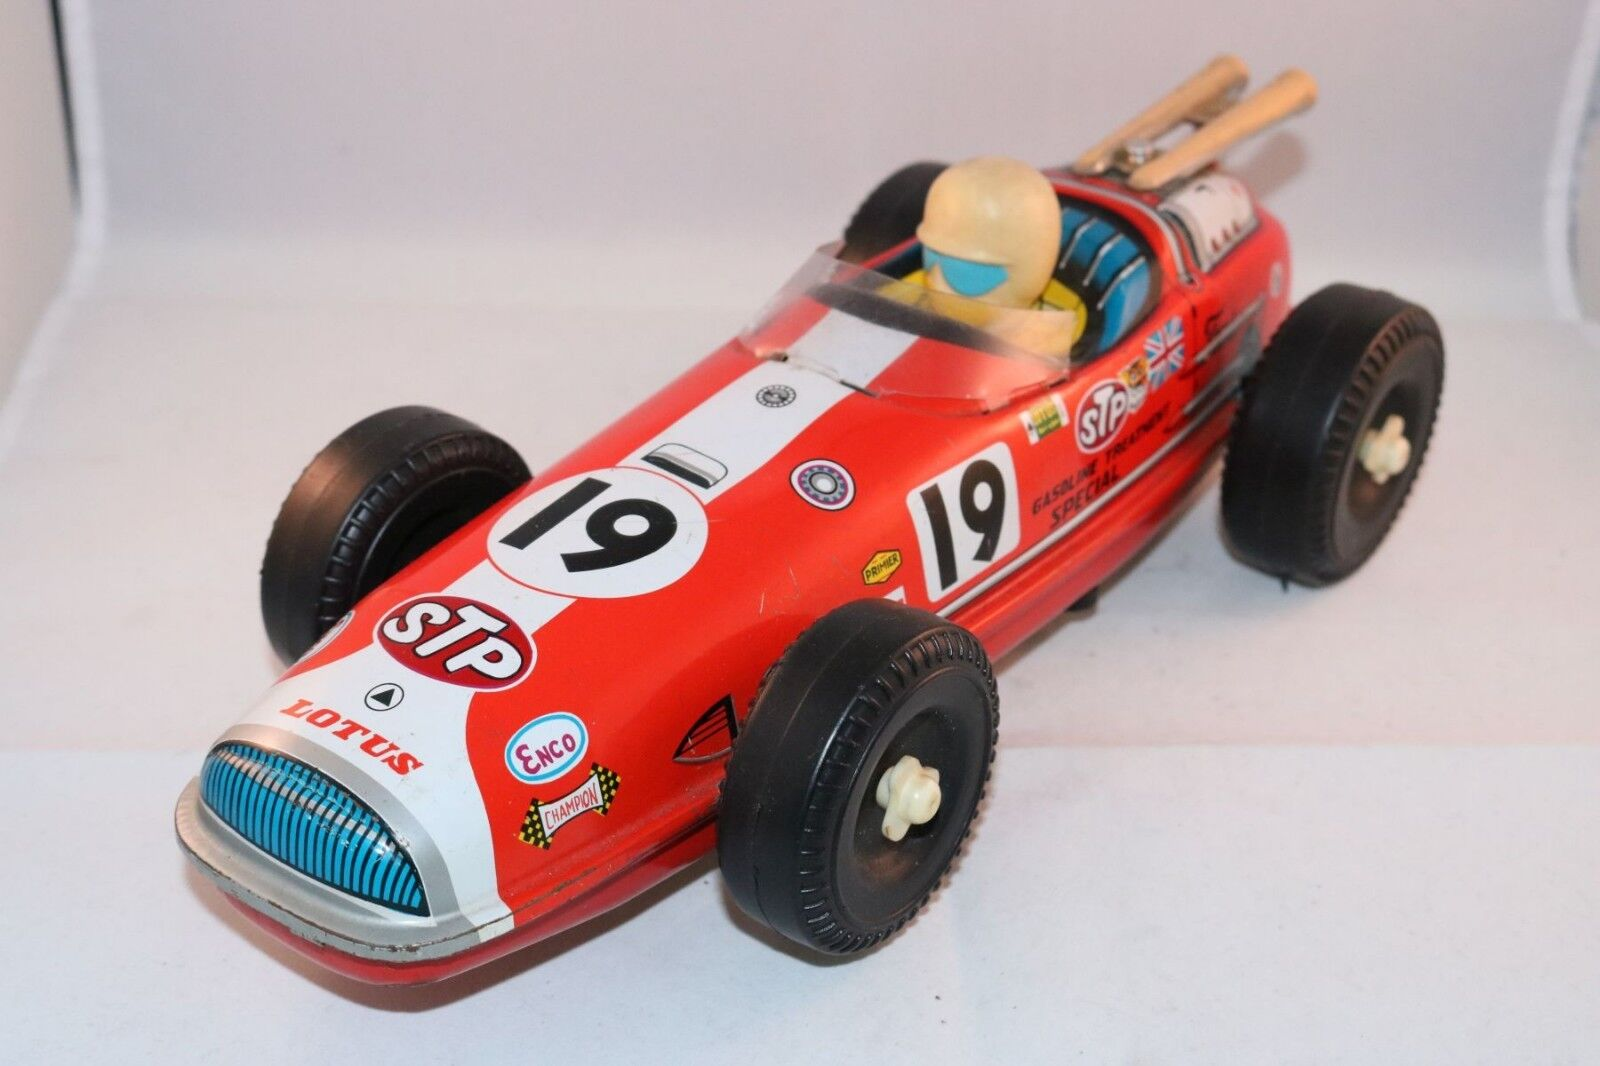 Oluma Tinplate Lotus racing car with battery engine 30 cm long excellent plus